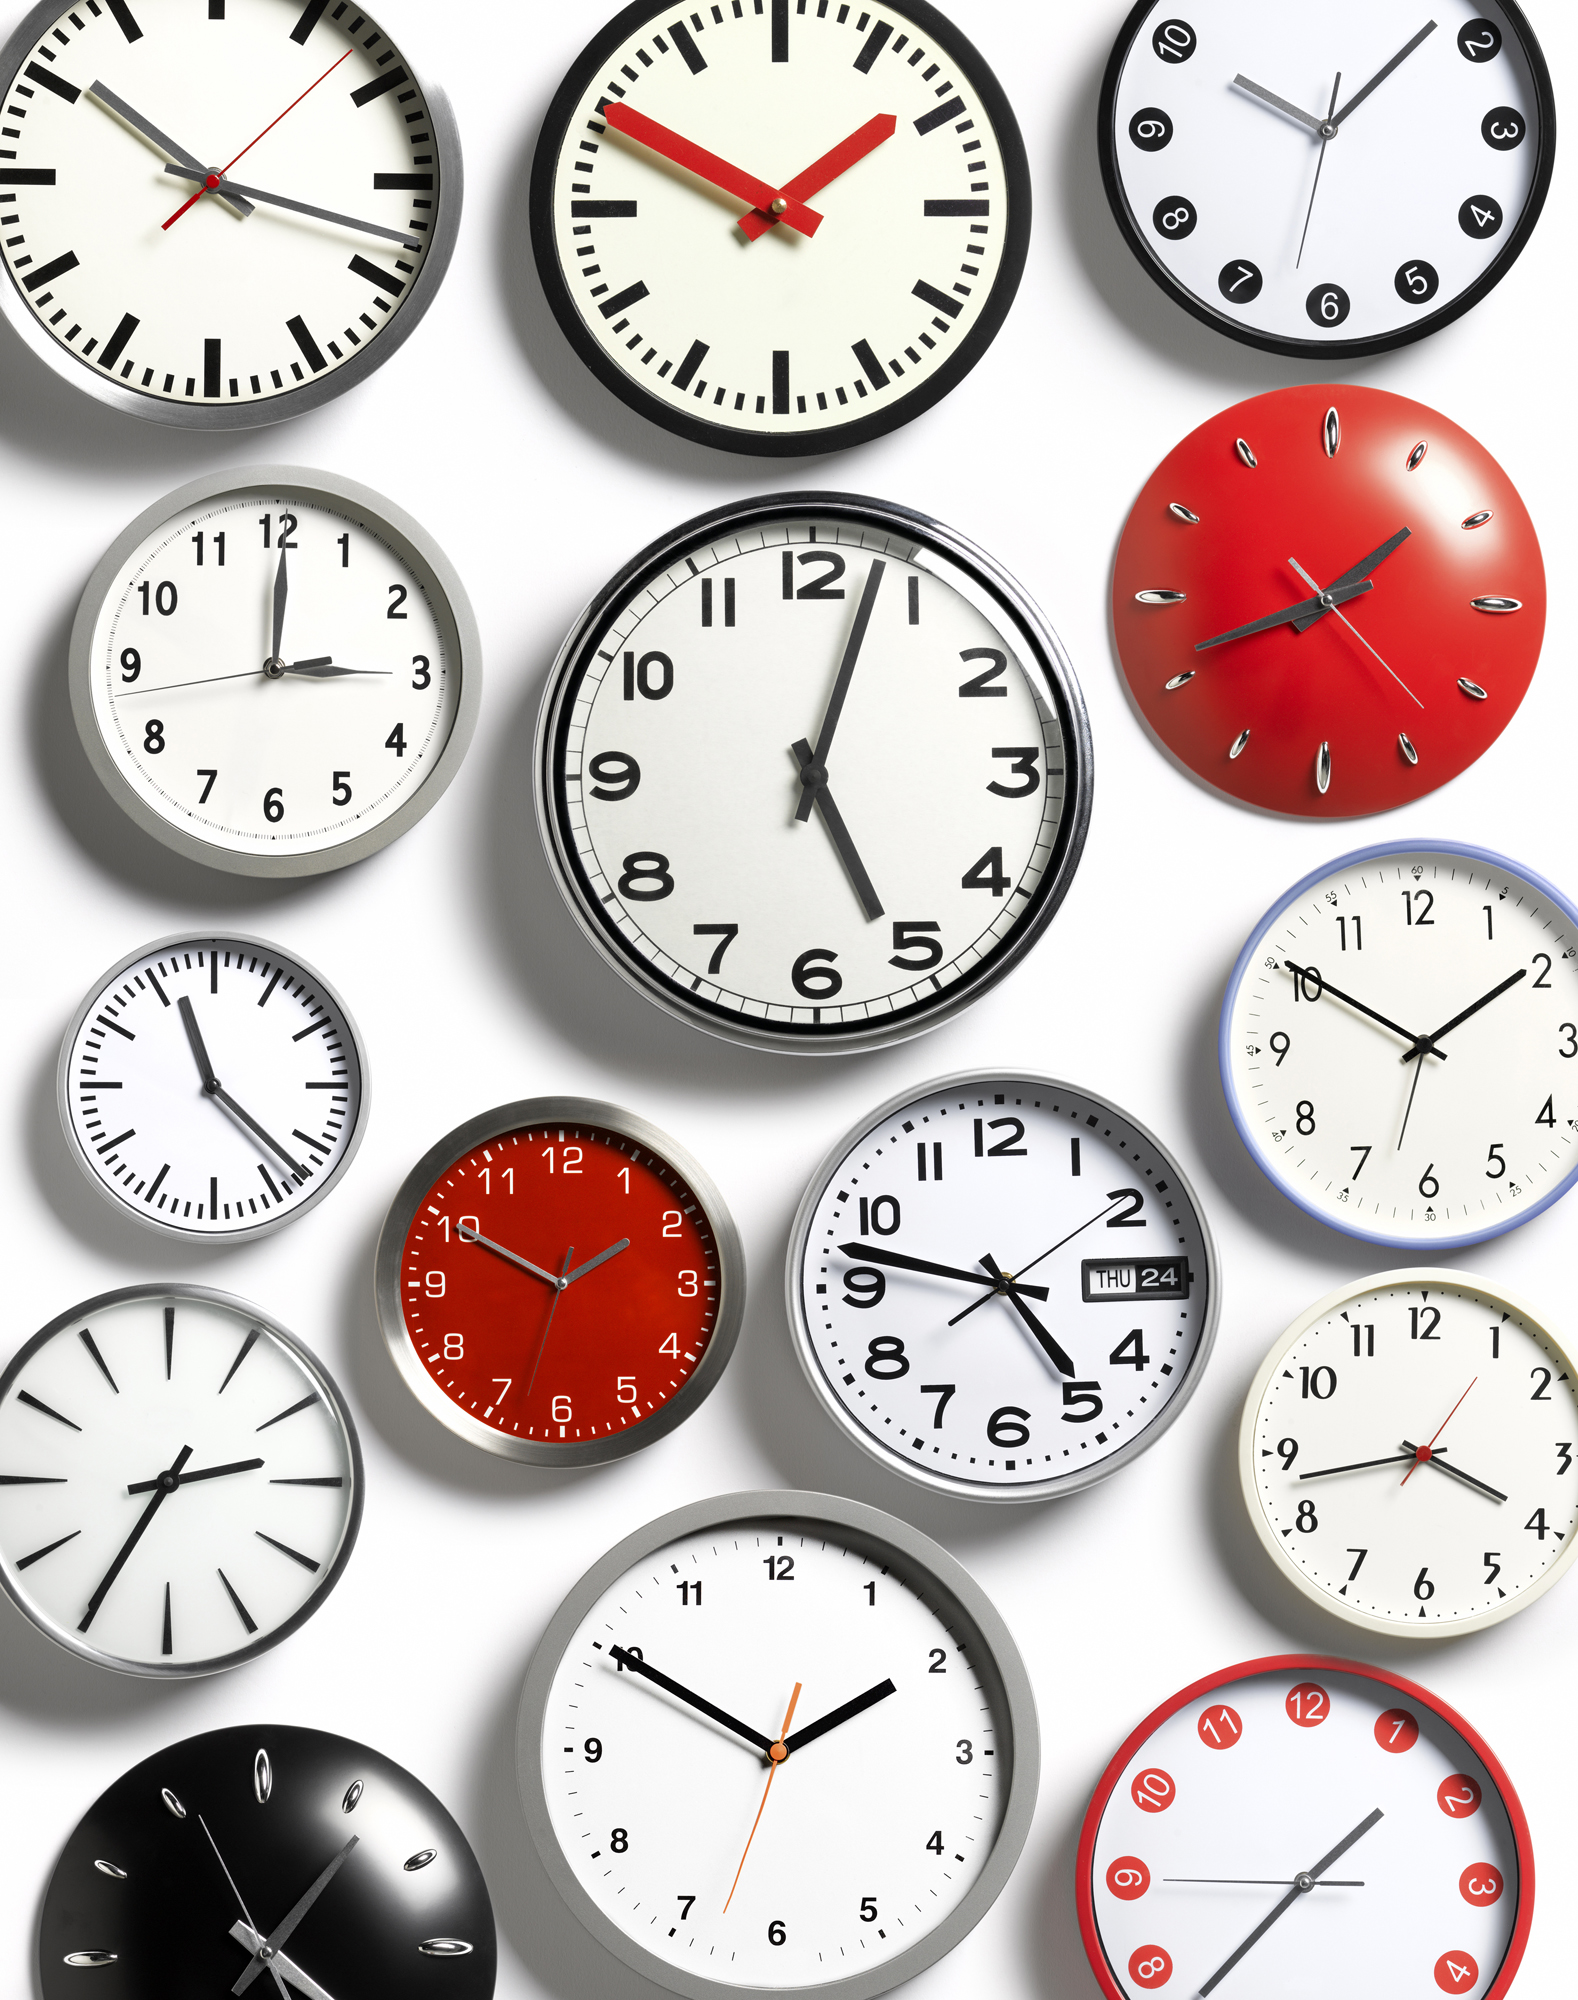 Clocks set to many different times